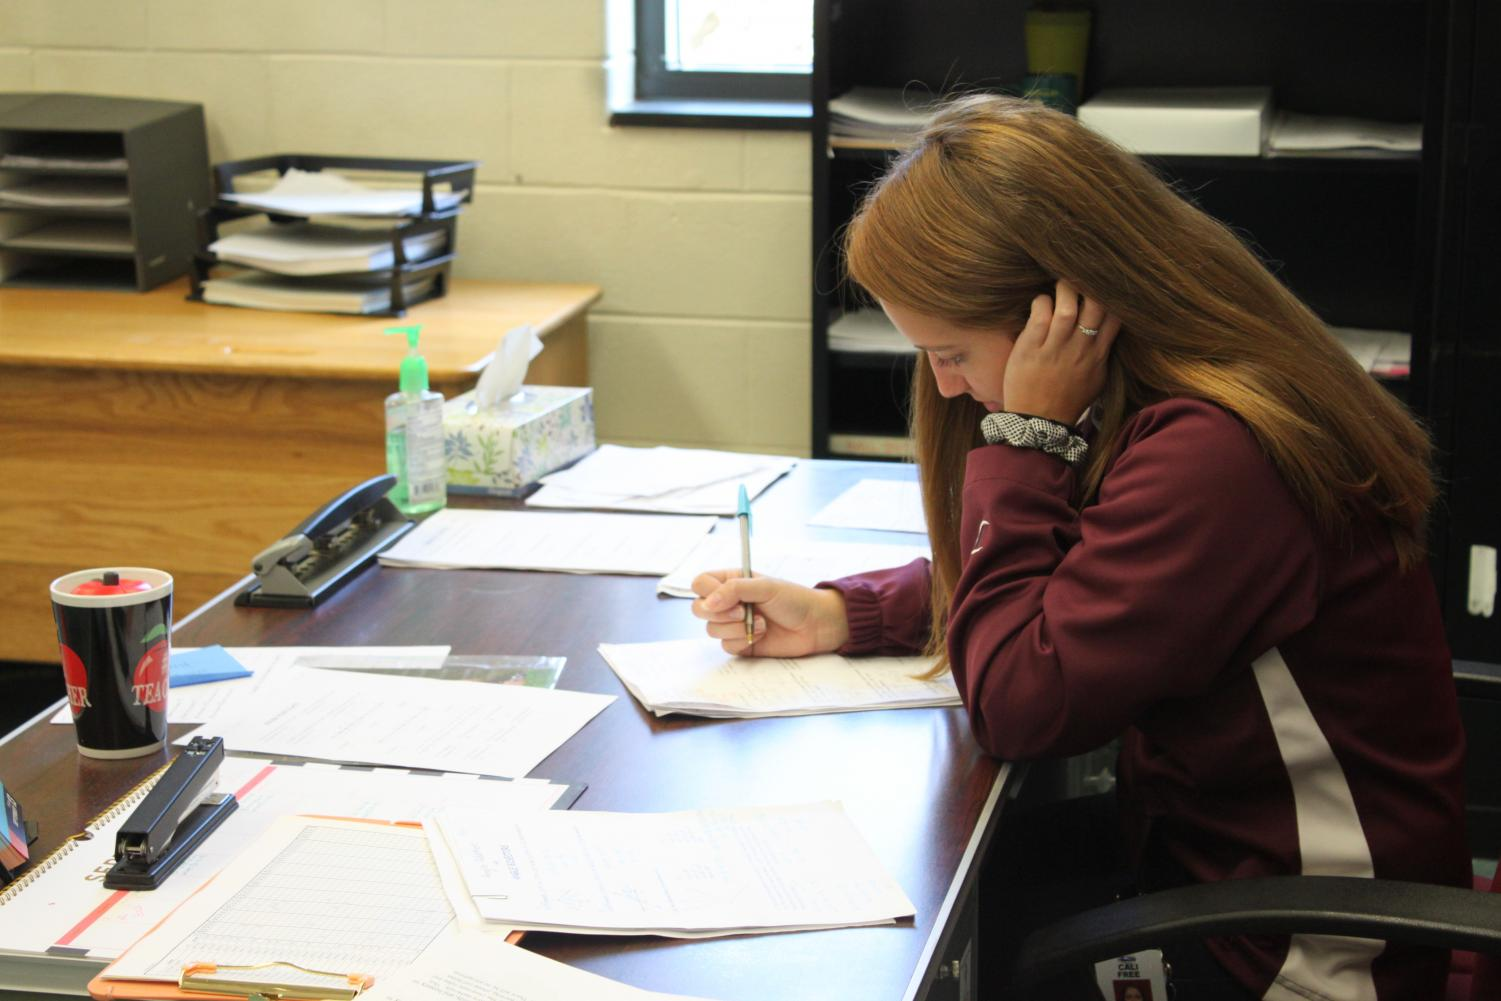 Cali Free grades papers and settles into her new teaching job.  This is her first teaching job here at Altoona High, and the Mountain Lions have welcomed her with open arms.